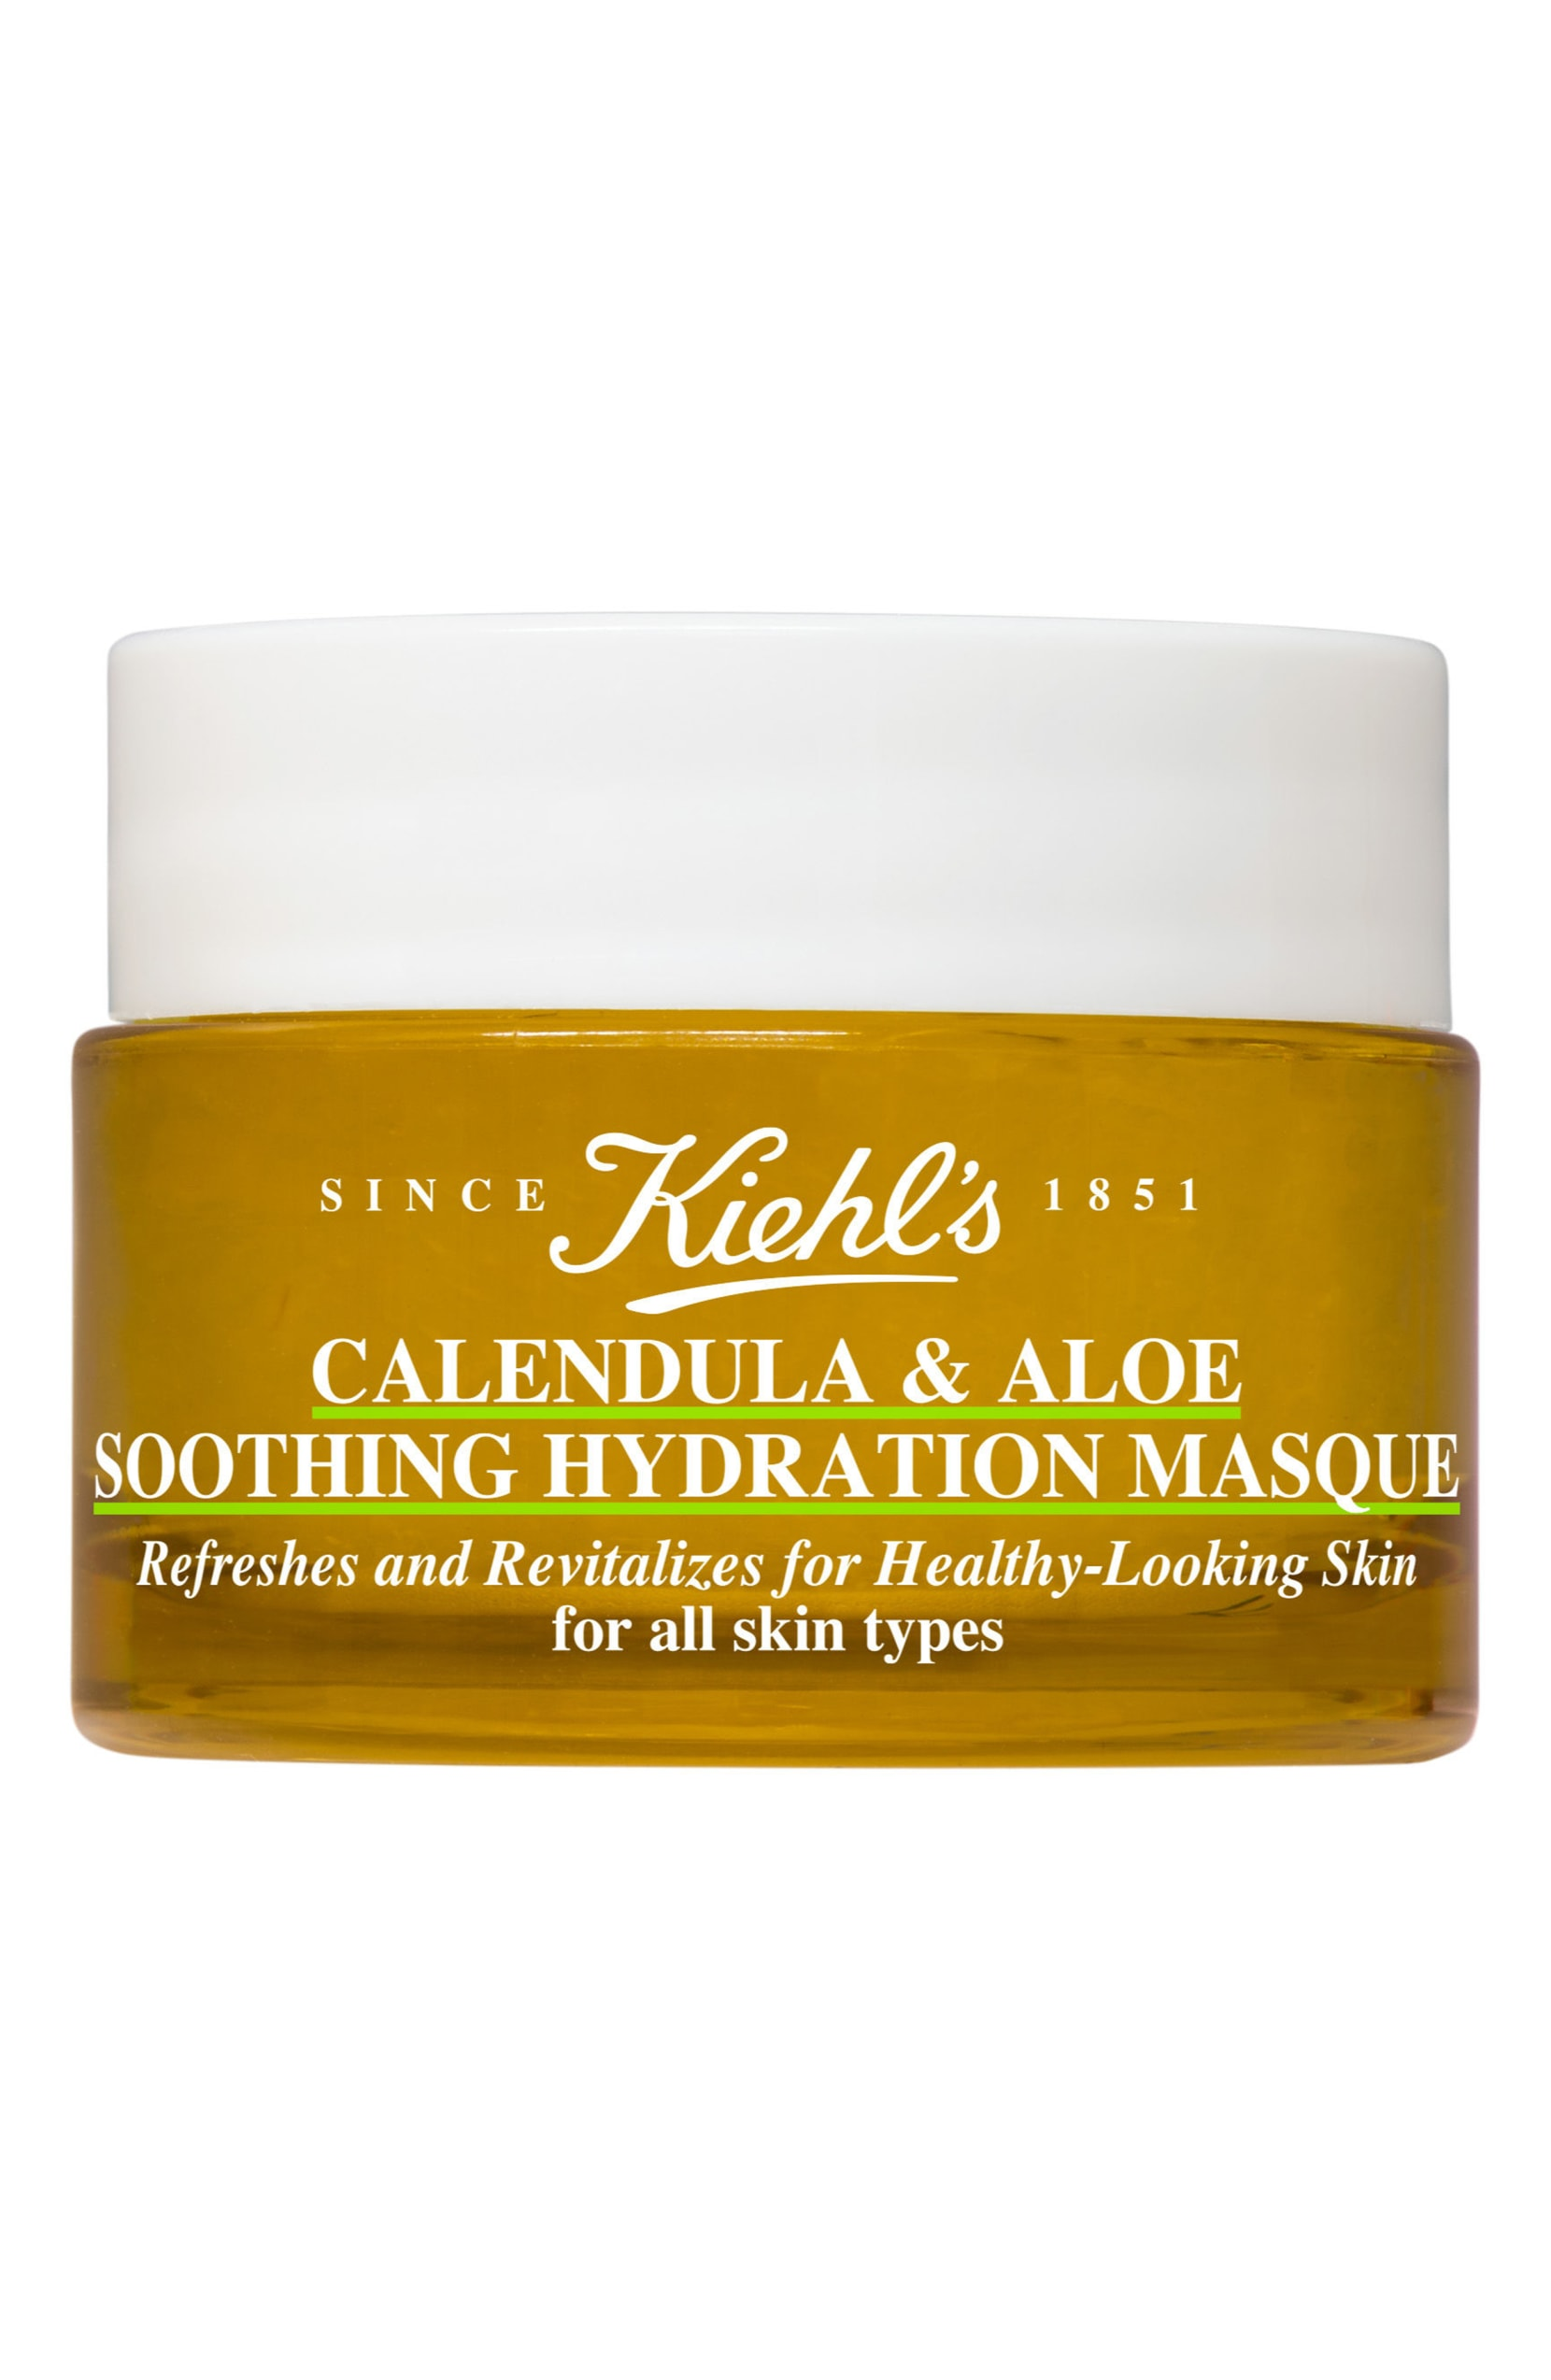 Soothing Hydration Masque ($45)